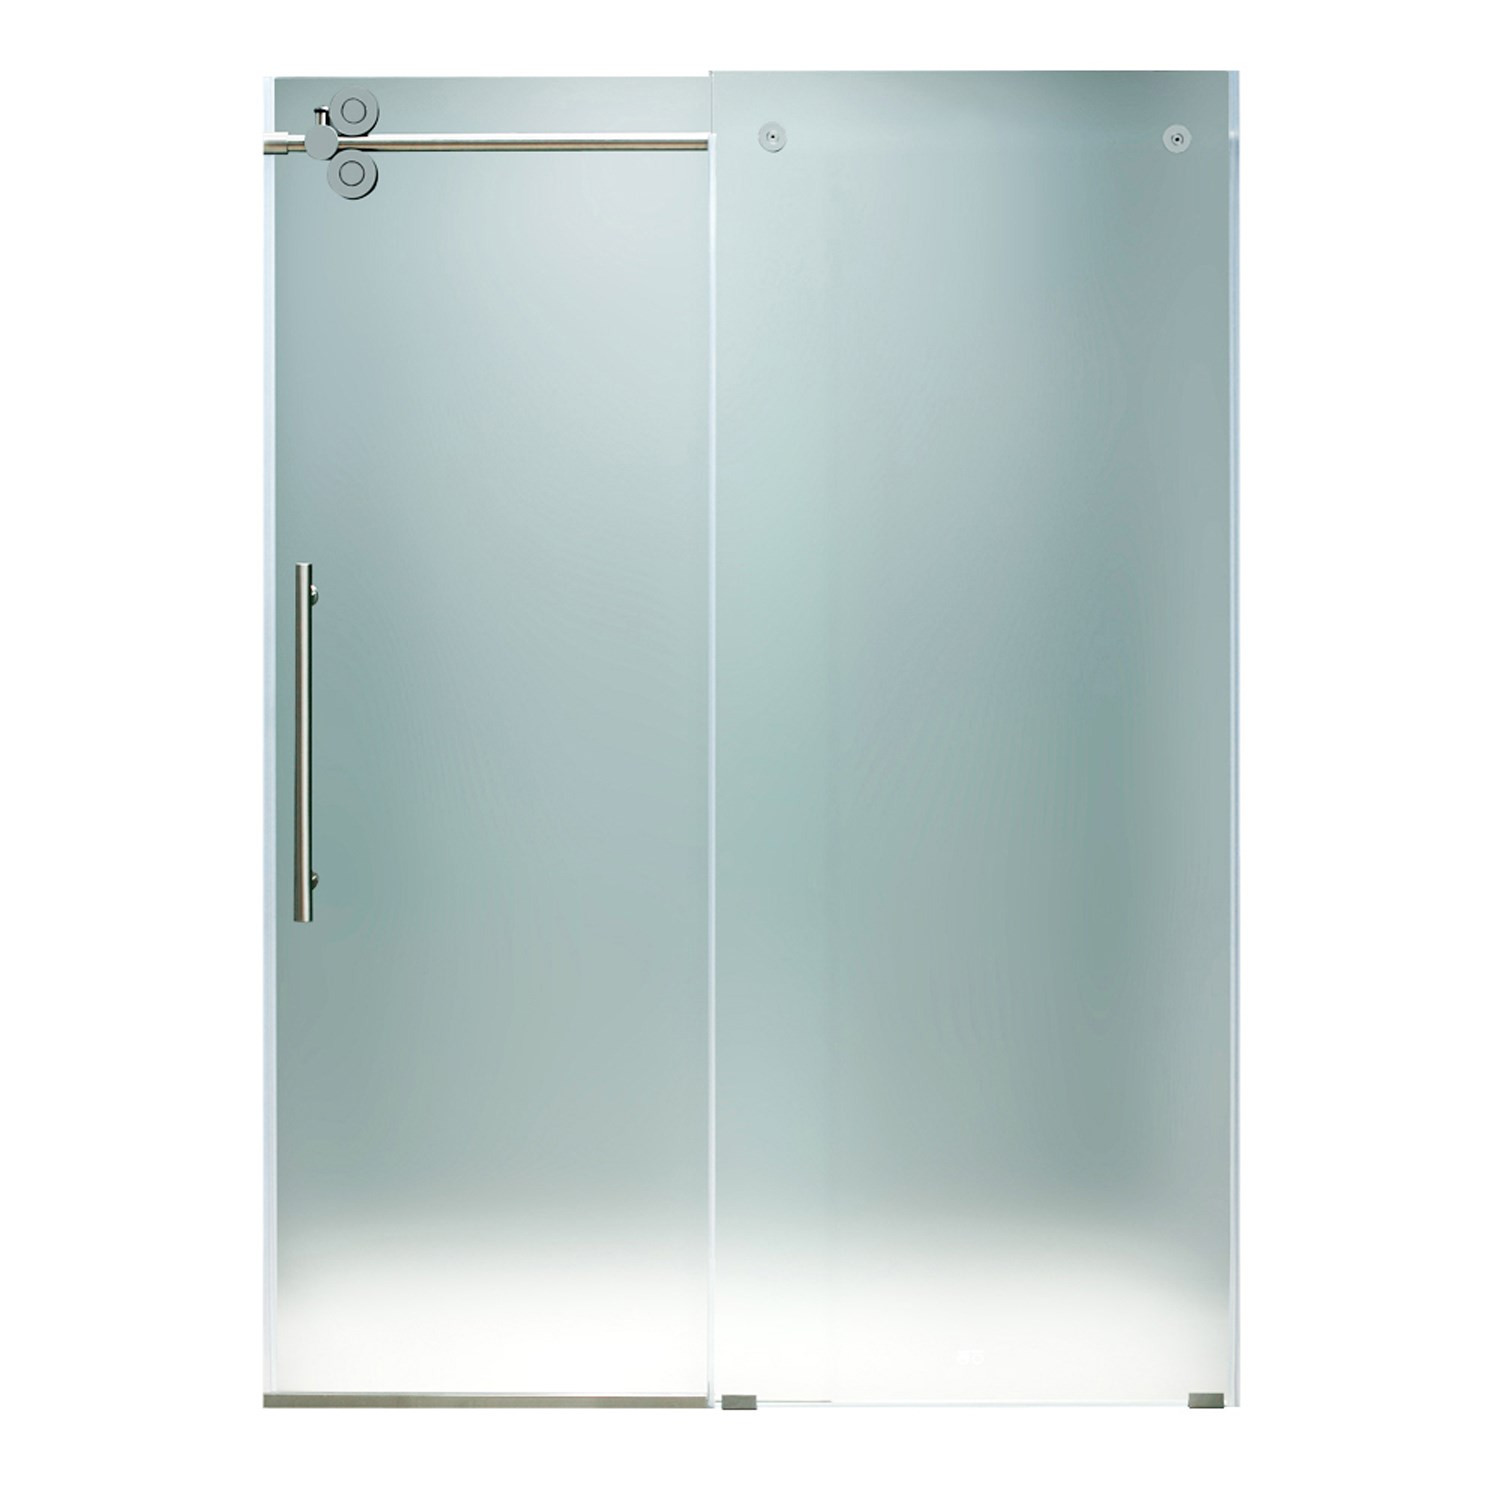 VIGO VG6041CHMT6074L Elan Frameless Shower Door With Chrome Hardware Left-Sided Door